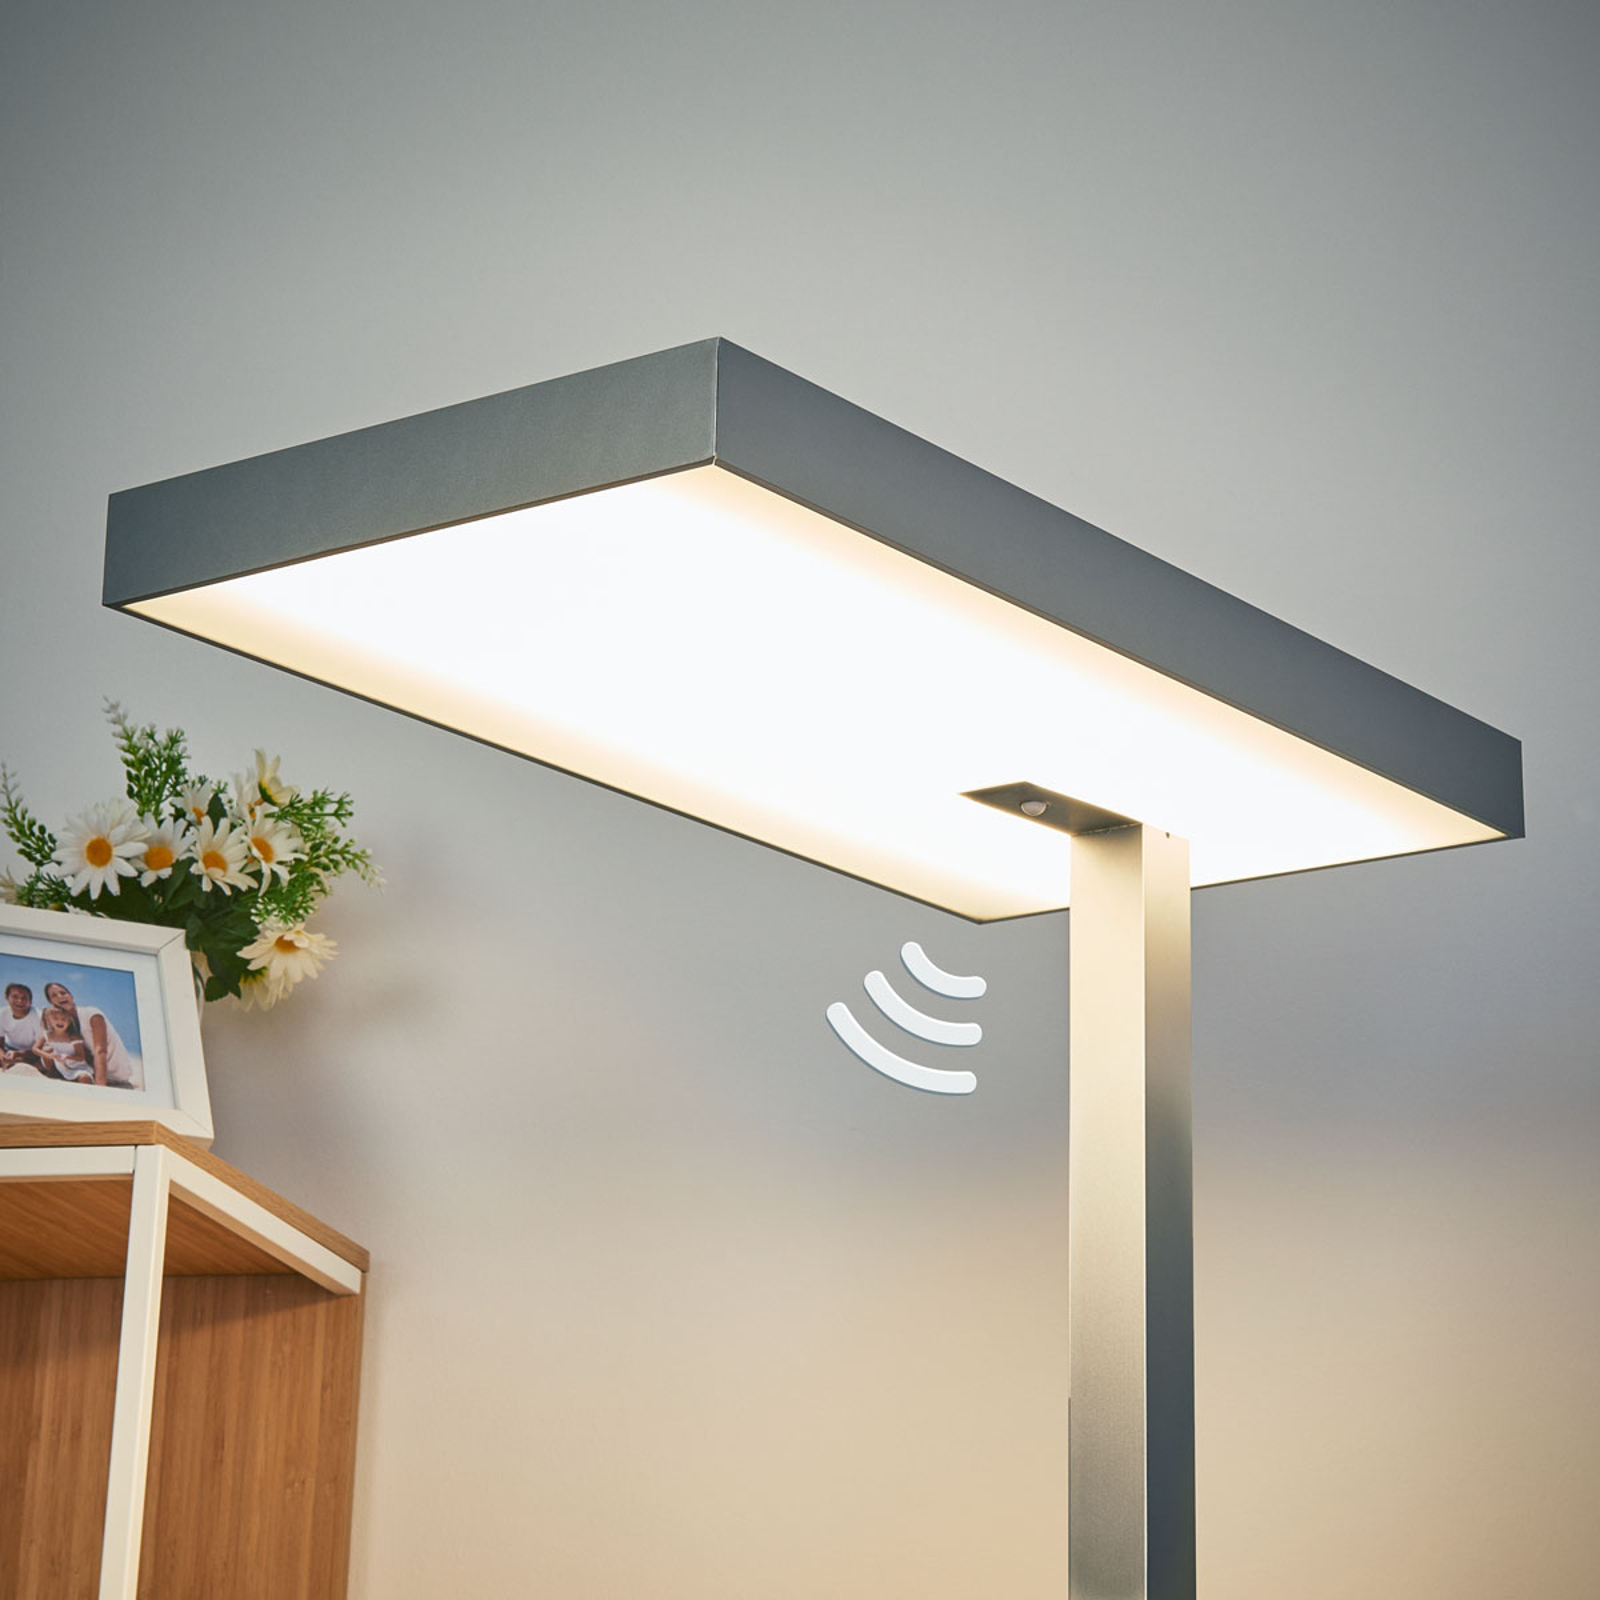 Office LED floor lamp Nora with motion detector_9966006_1